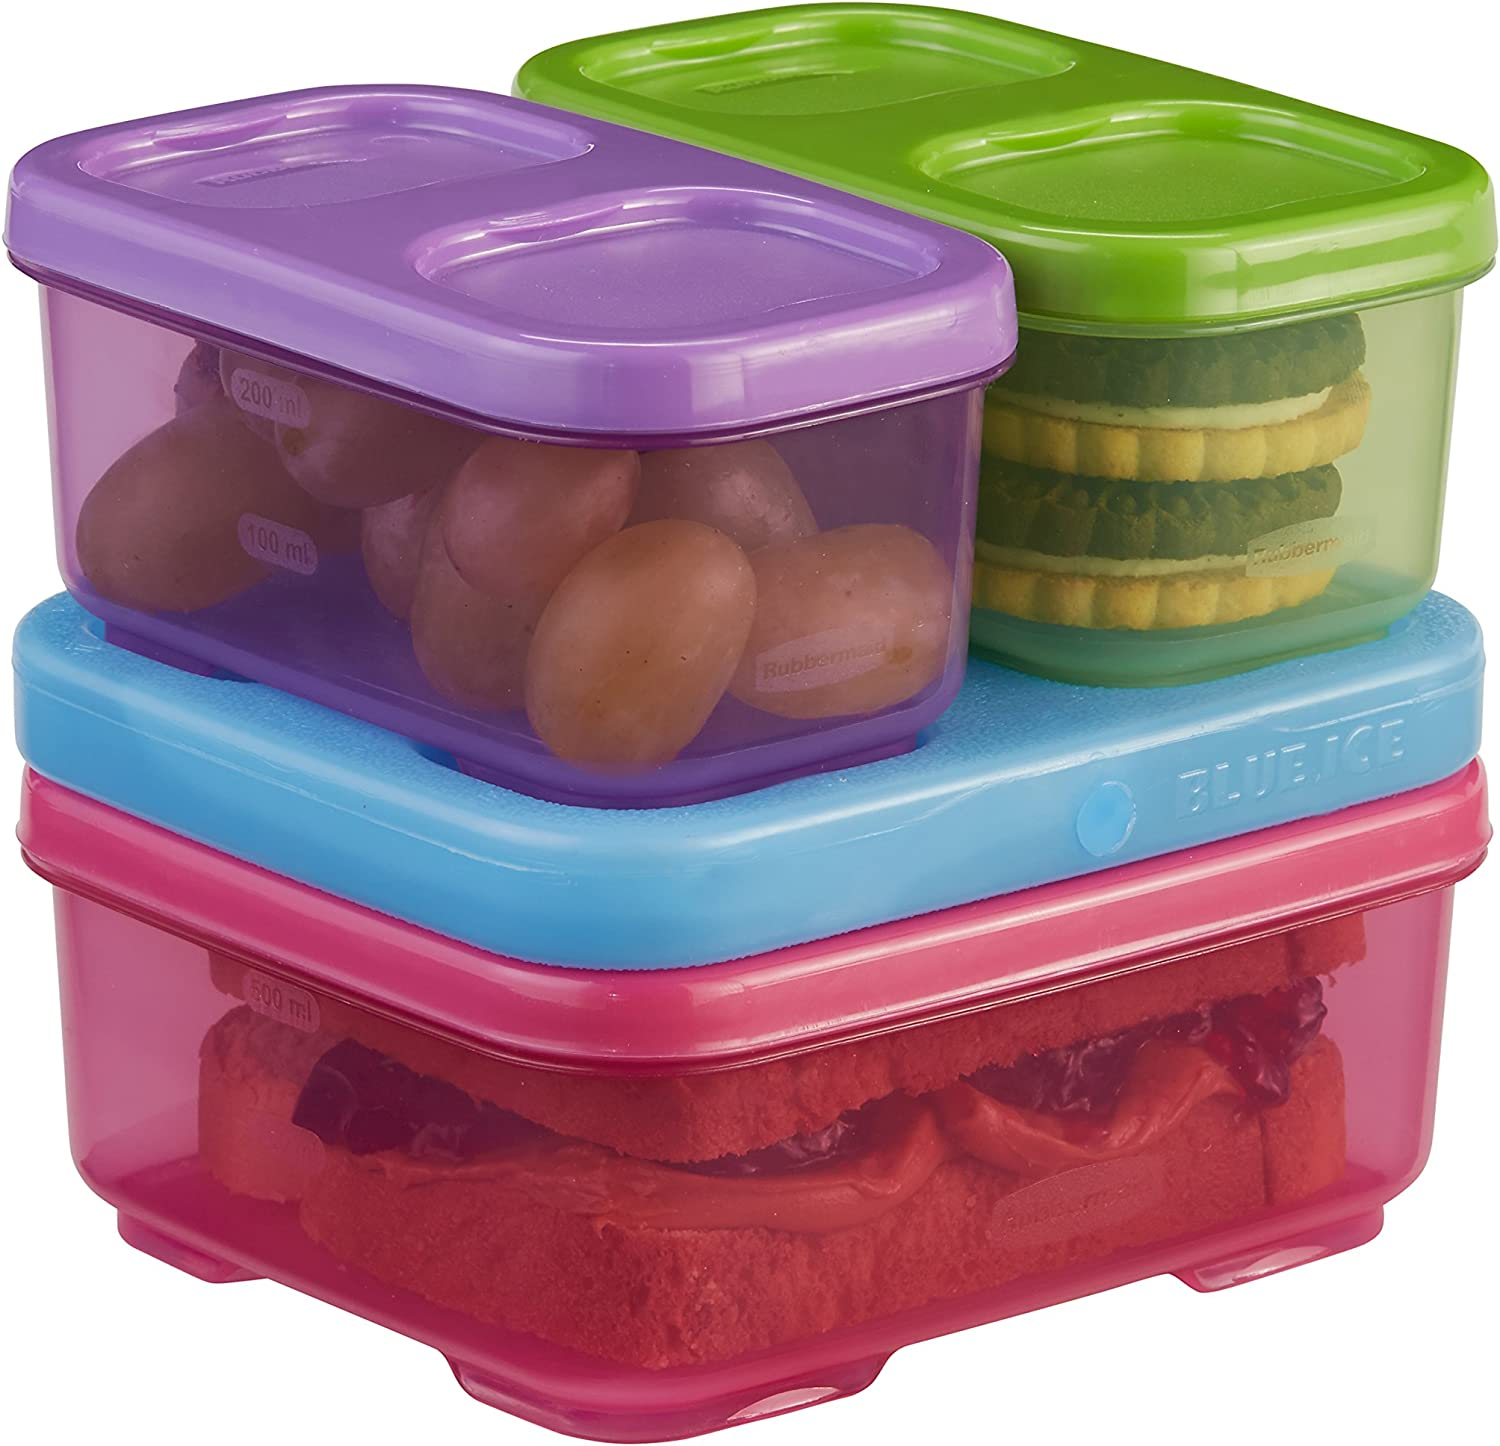 Rubbermaid LunchBlox Kids Lunch Box and Food Prep Containers, Tall, Purple/Green/Pink | Stackable & Microwave Safe